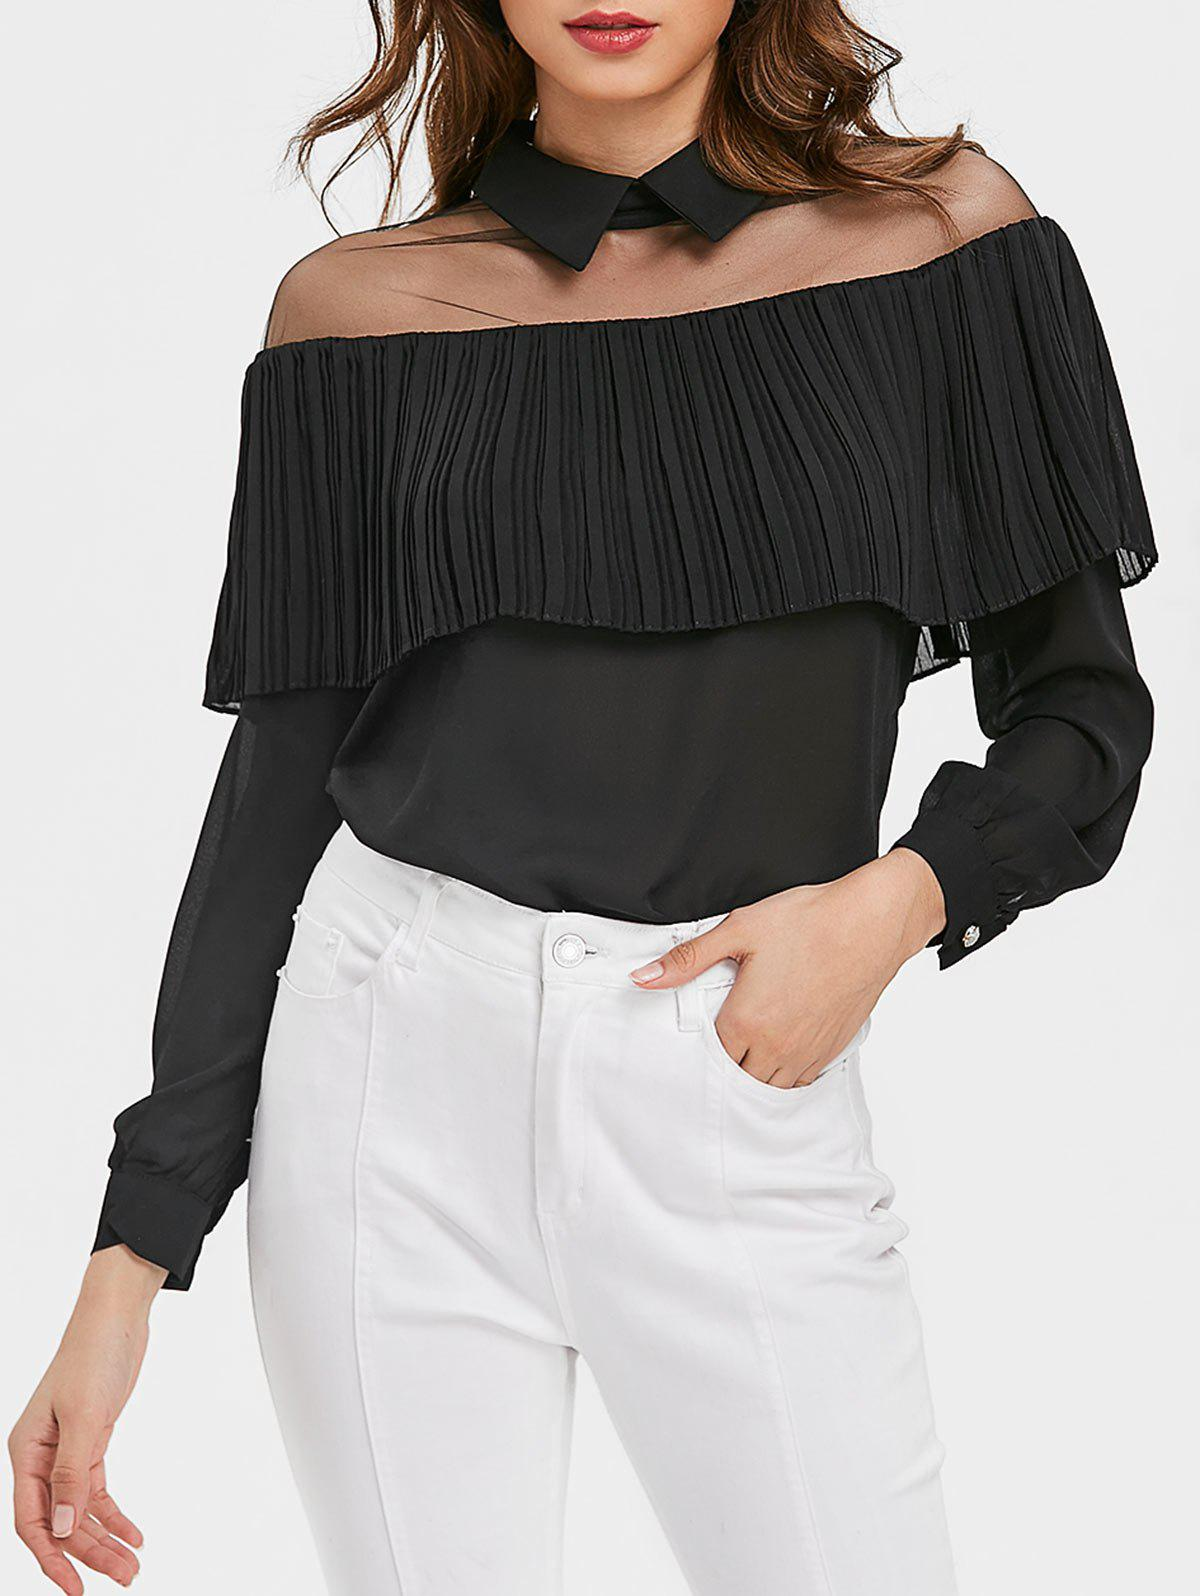 Semi Sheer Mesh Panel Ruffle Chiffon Blouse - BLACK XL